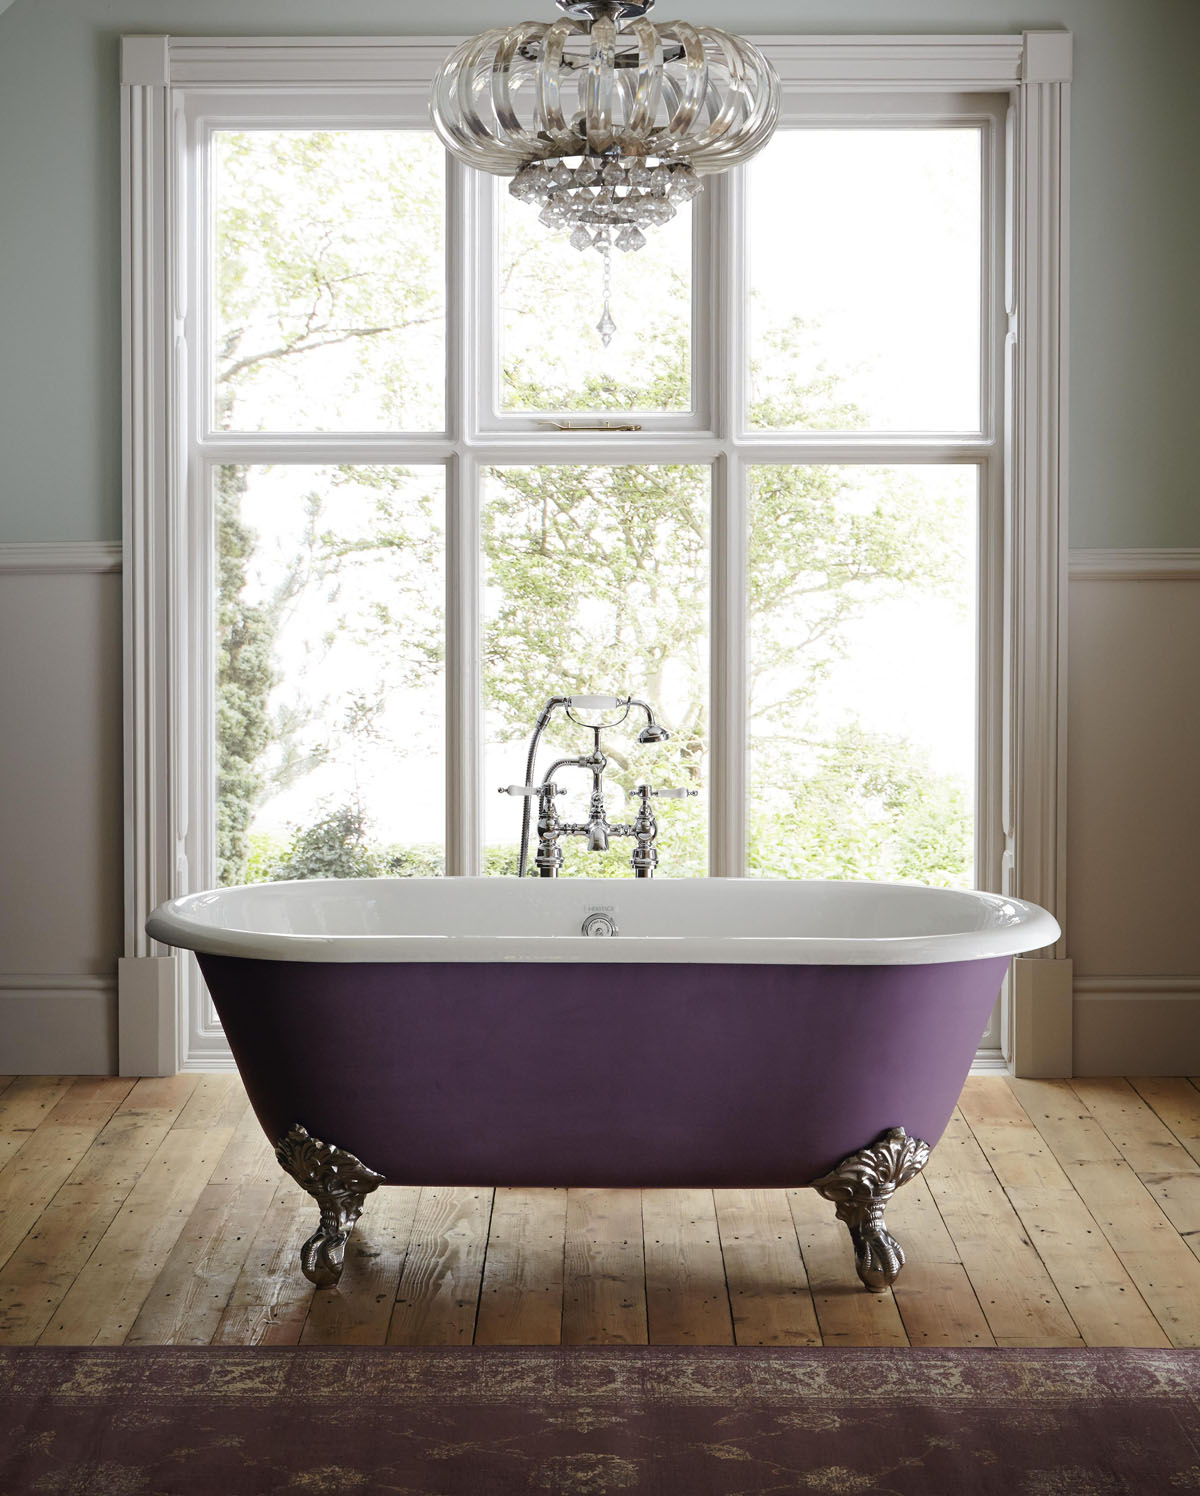 Heritage Bathrooms product images for SBID interior design blog